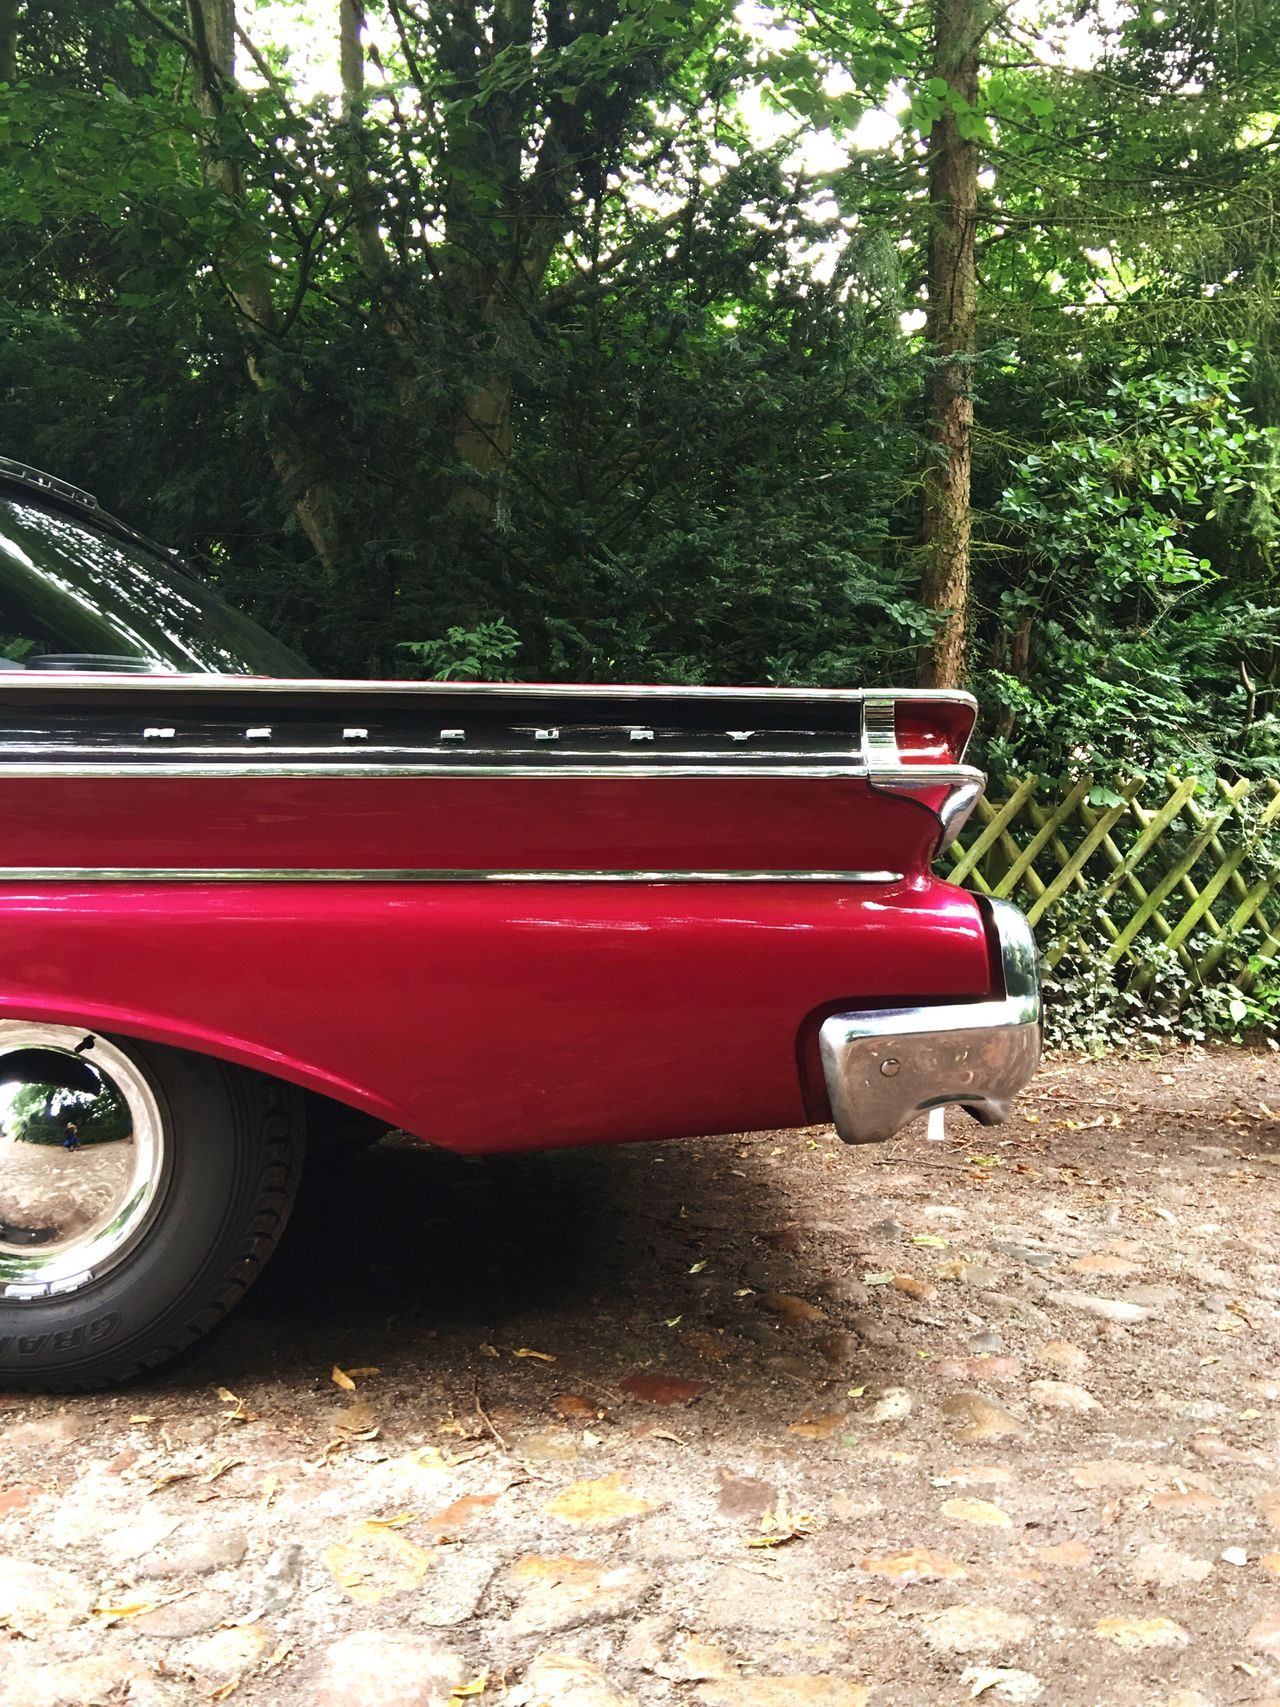 Car Classic Car US Cars Ford Ford Mercury Showcase July Red The Drive Oldtimer Green Hedge Parking Lieblingsteil